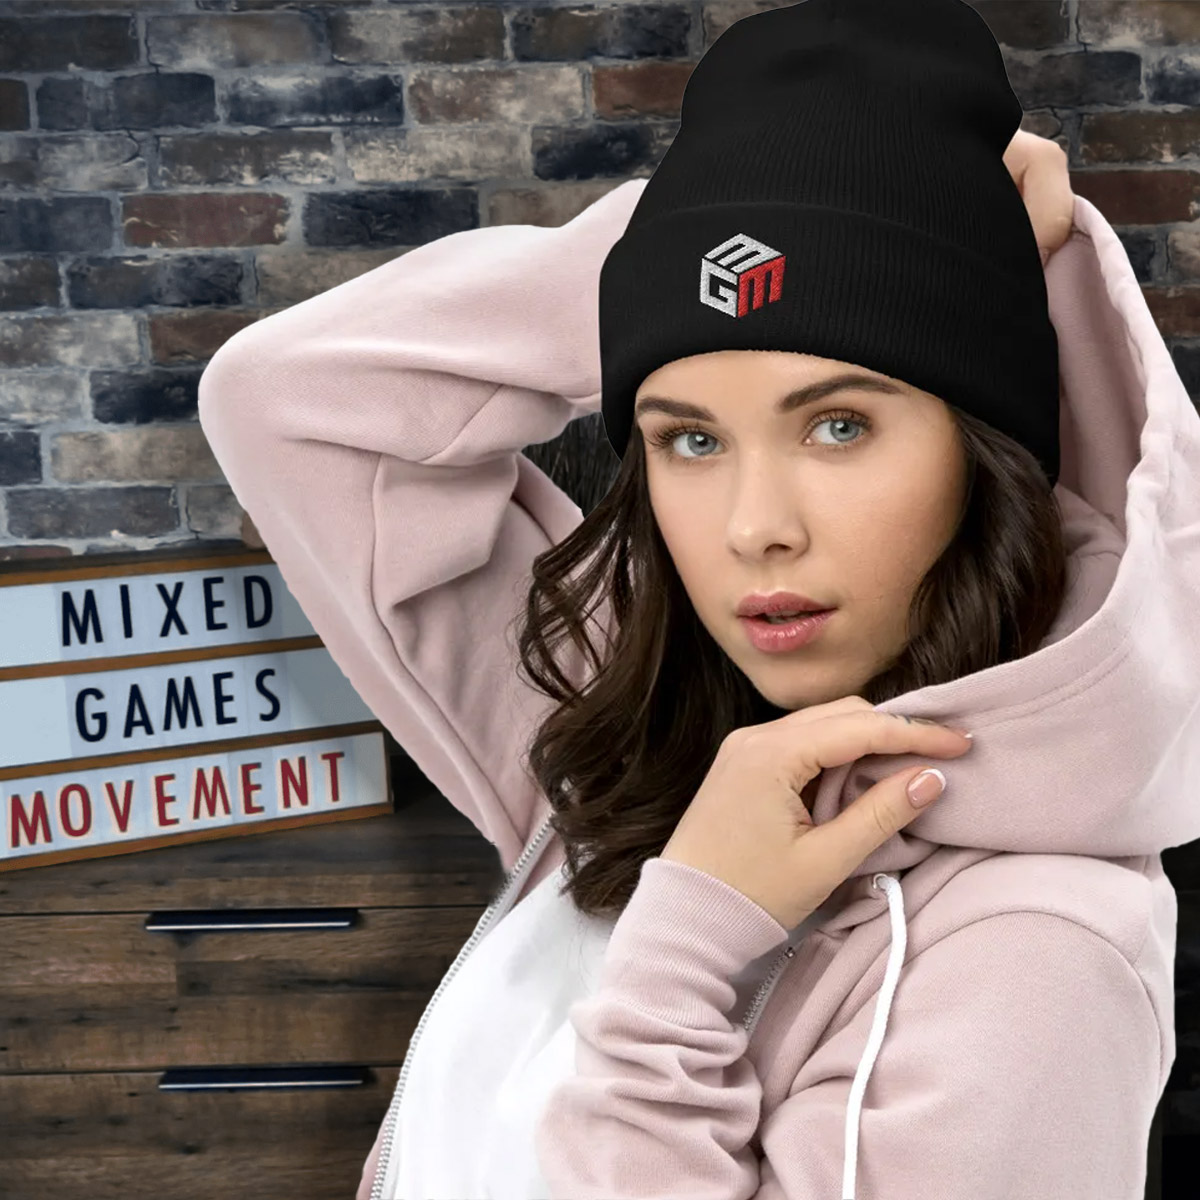 Mixed Games Movement Beanie Hat - Female Feature